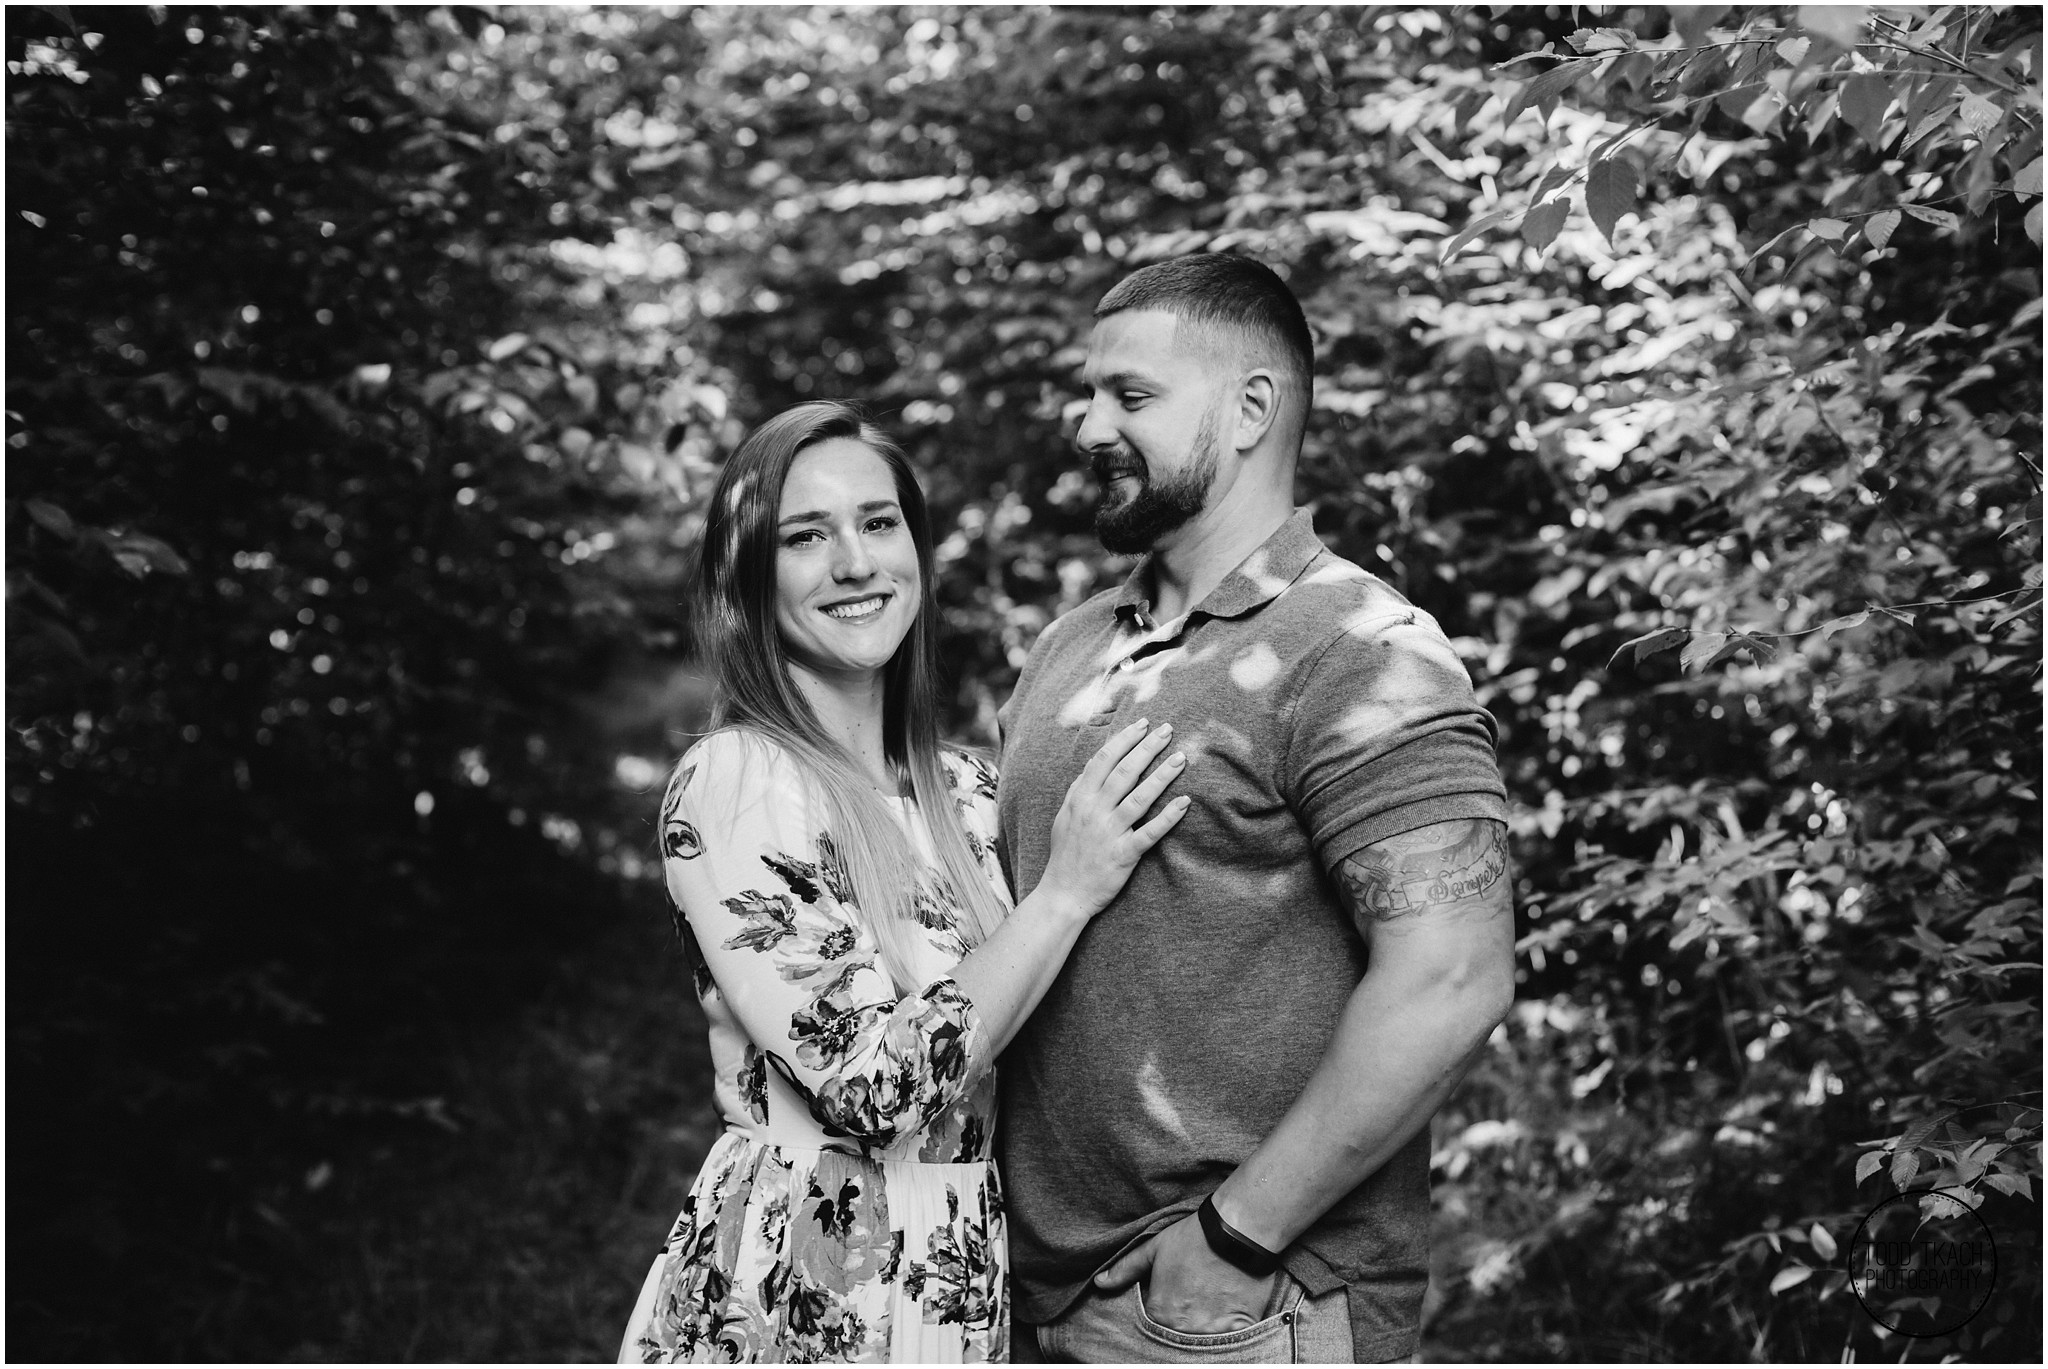 Kim & Brandon Engagement - Black and White Portrait